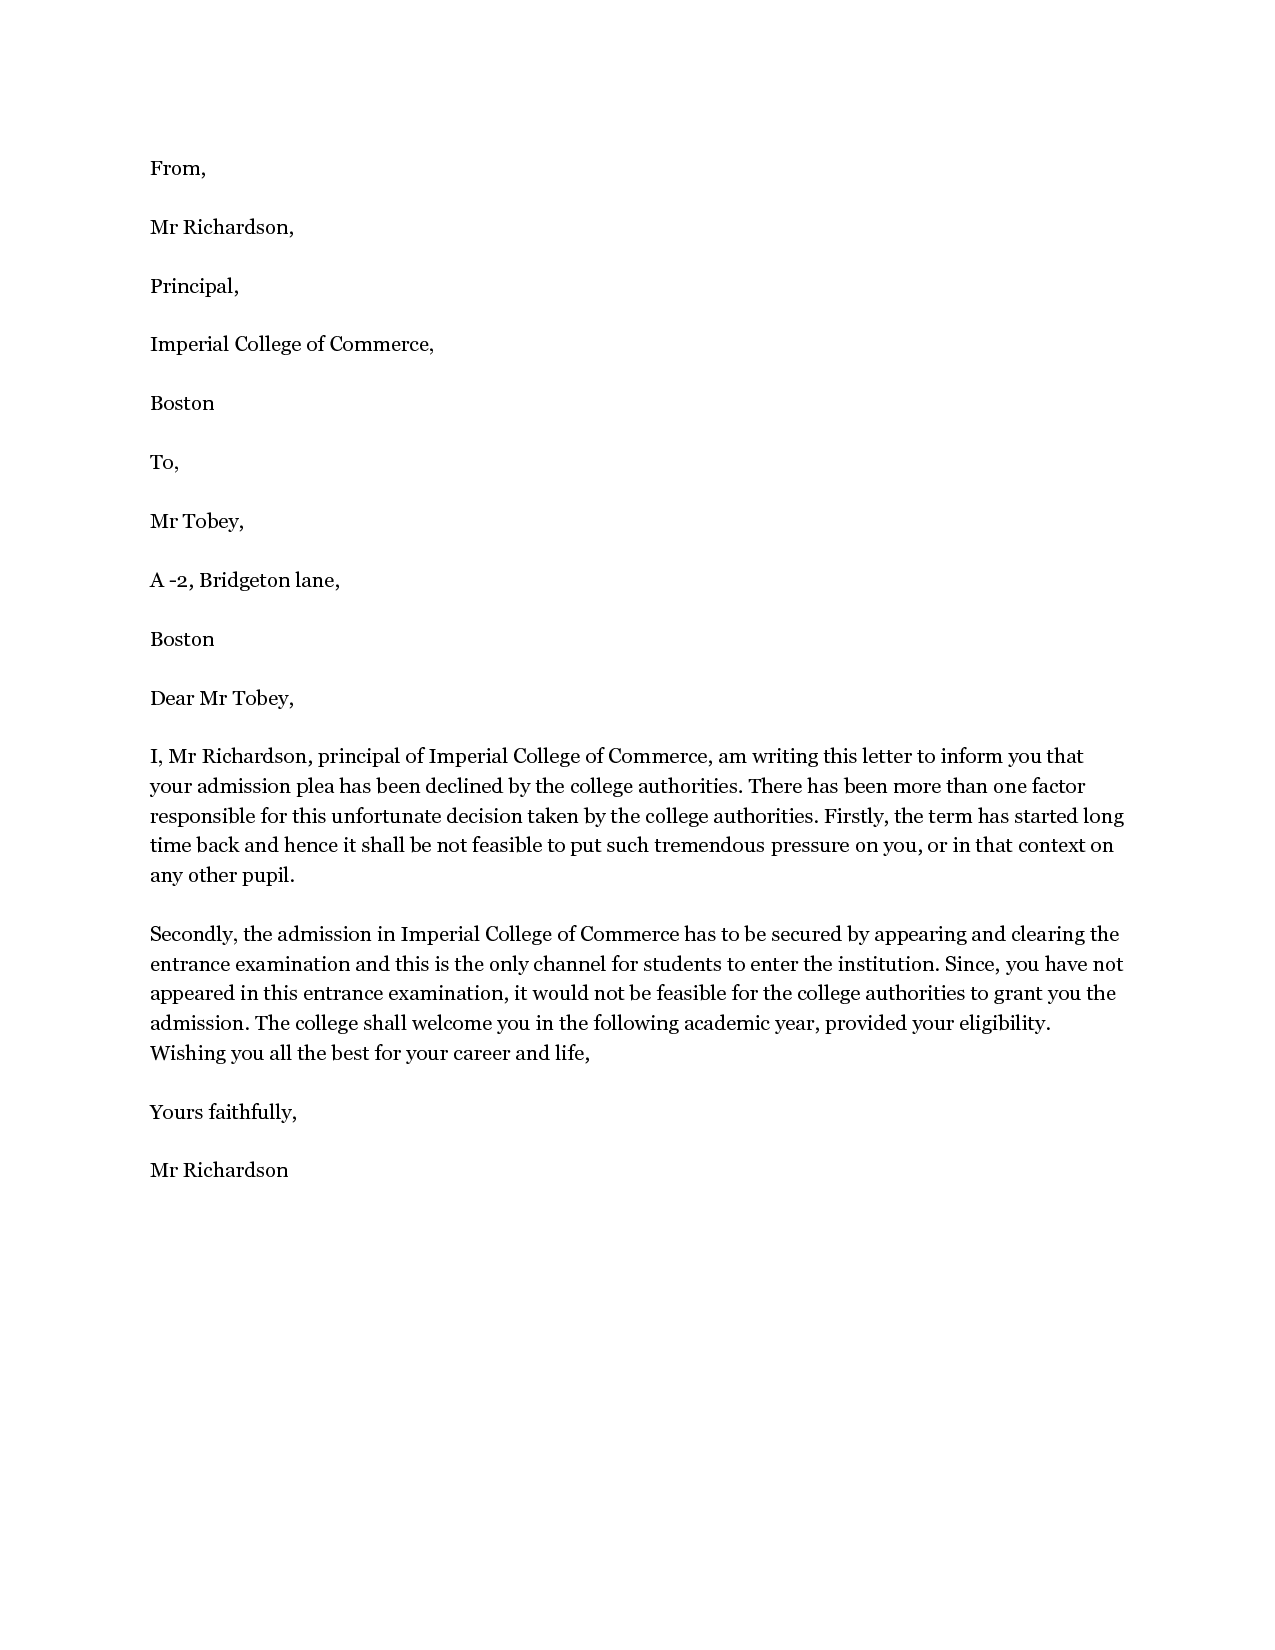 decline admission letter the letter should be brief positive college decline letter the letter should be brief positive and to the point here is a sample letter for declining college admission